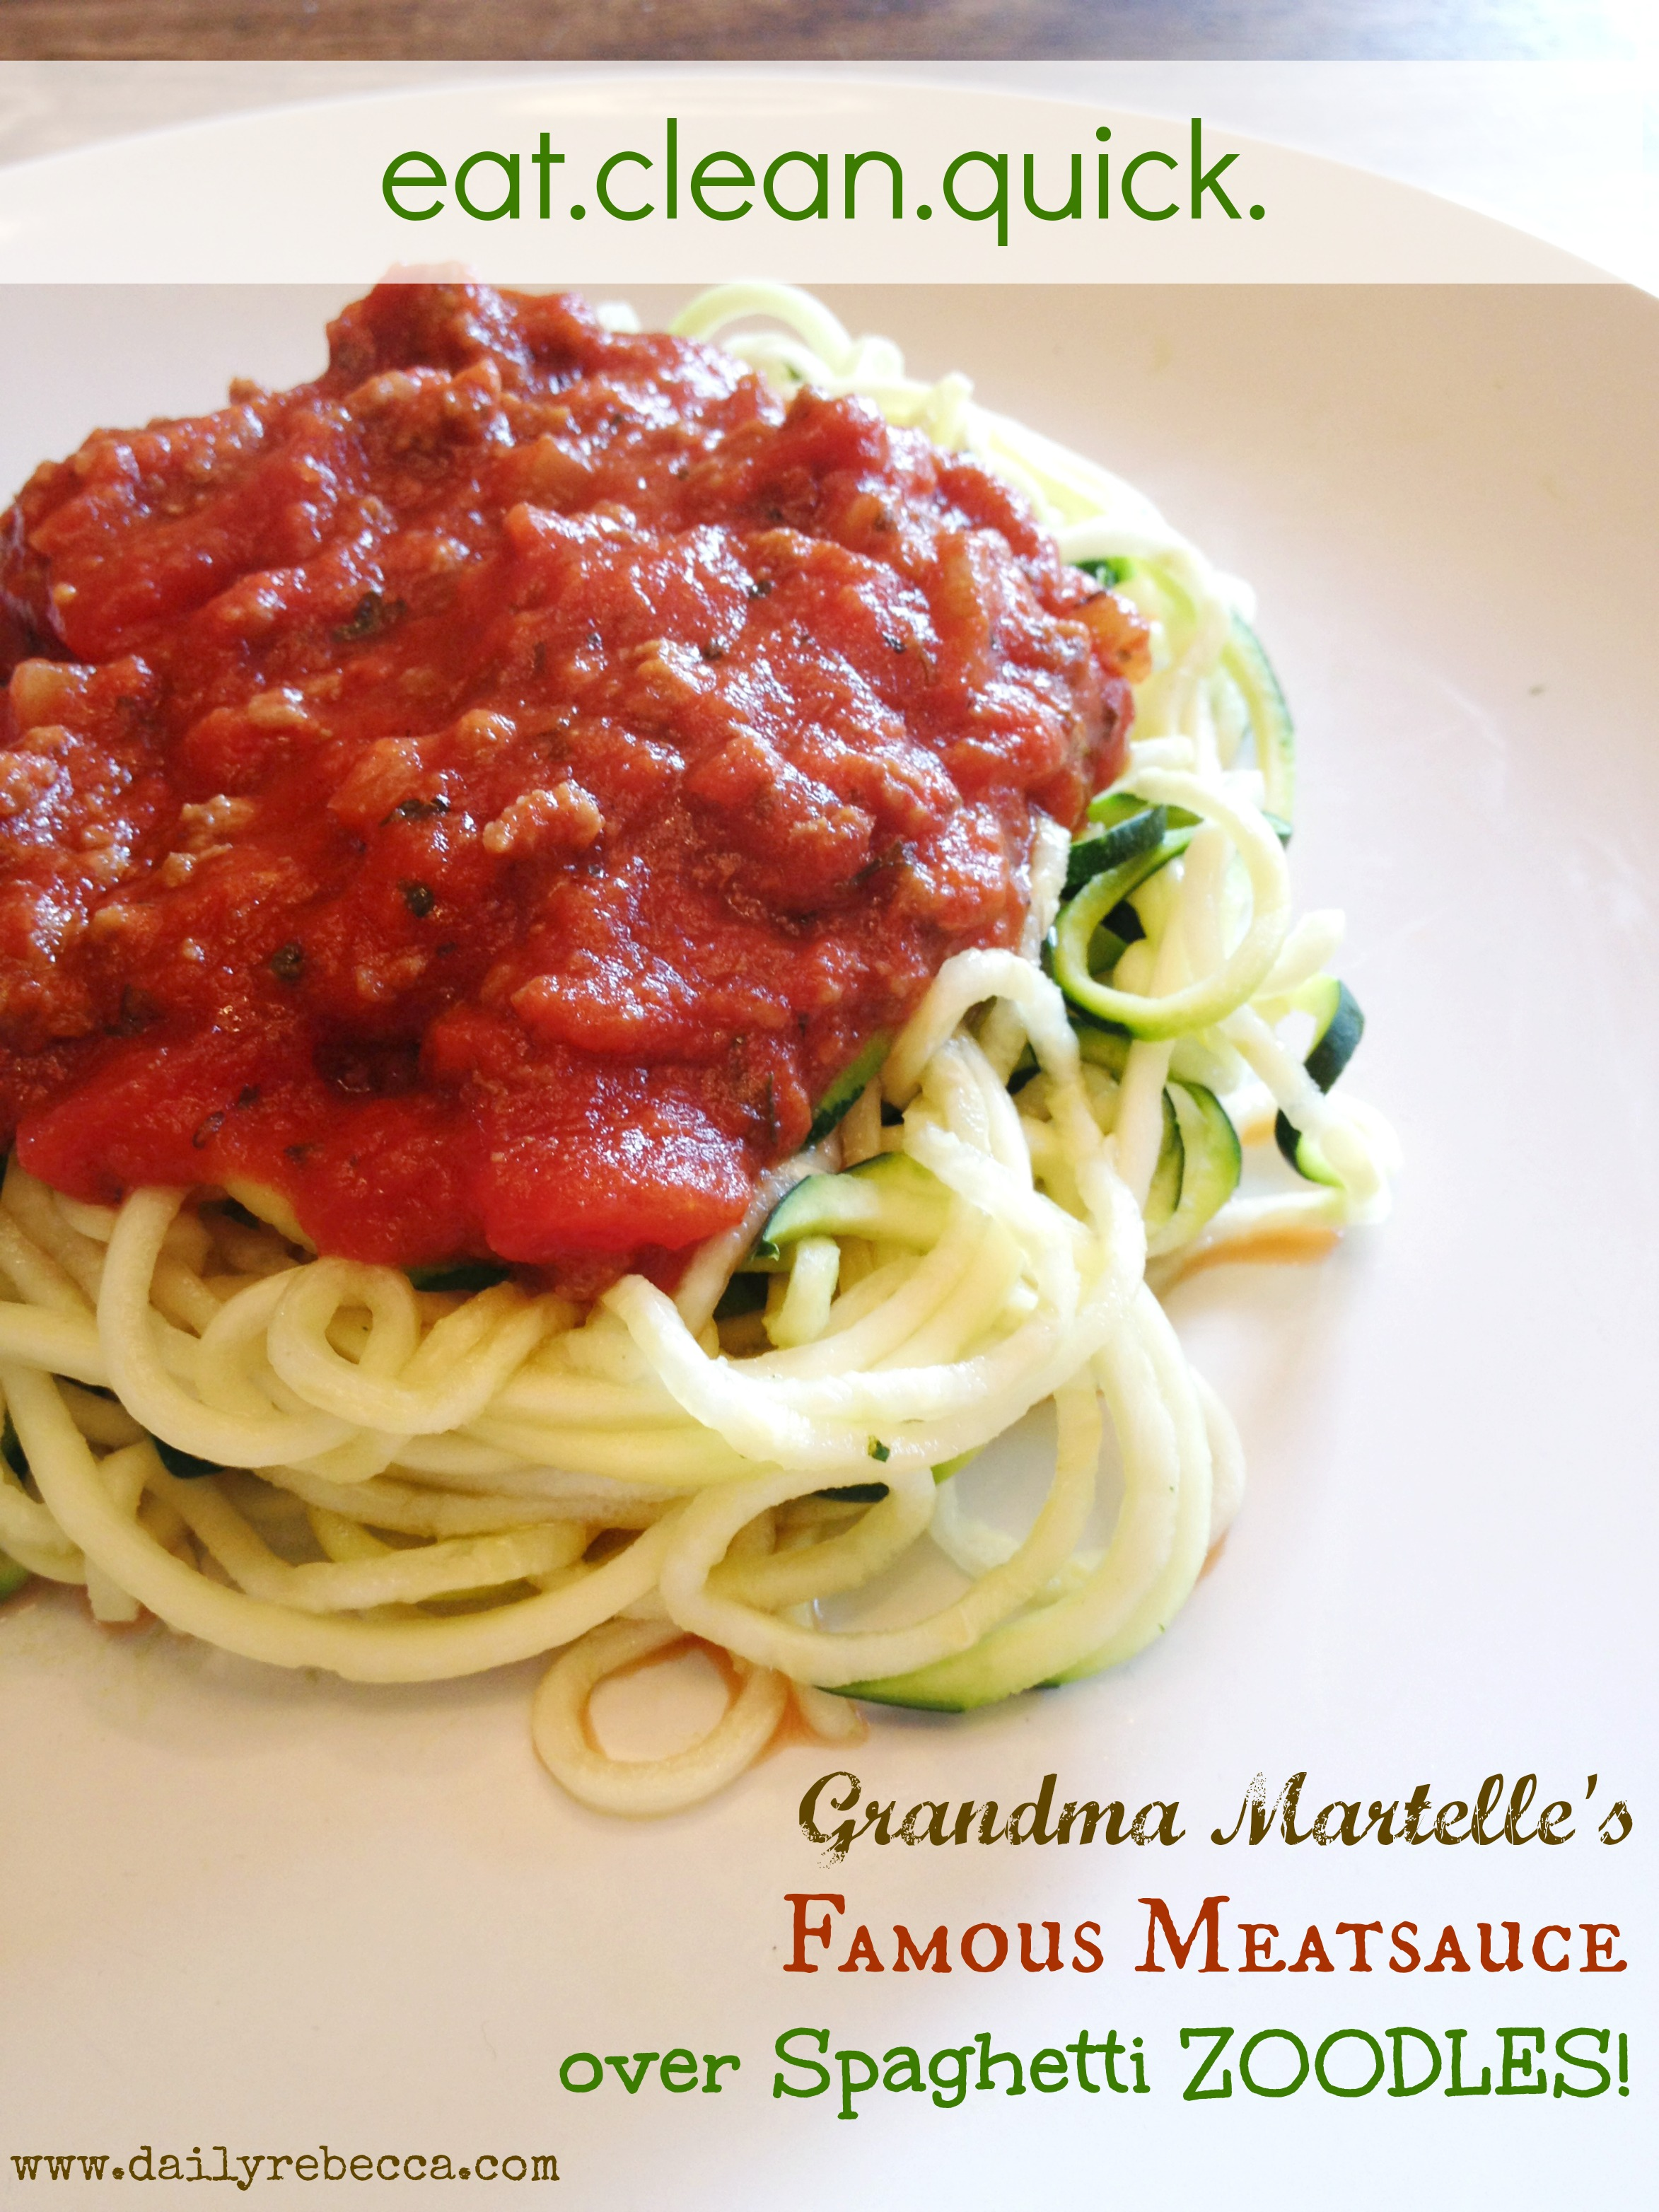 ... Martelle's Famous Meatsauce over Spaghetti ZOODLES! - Daily Rebecca